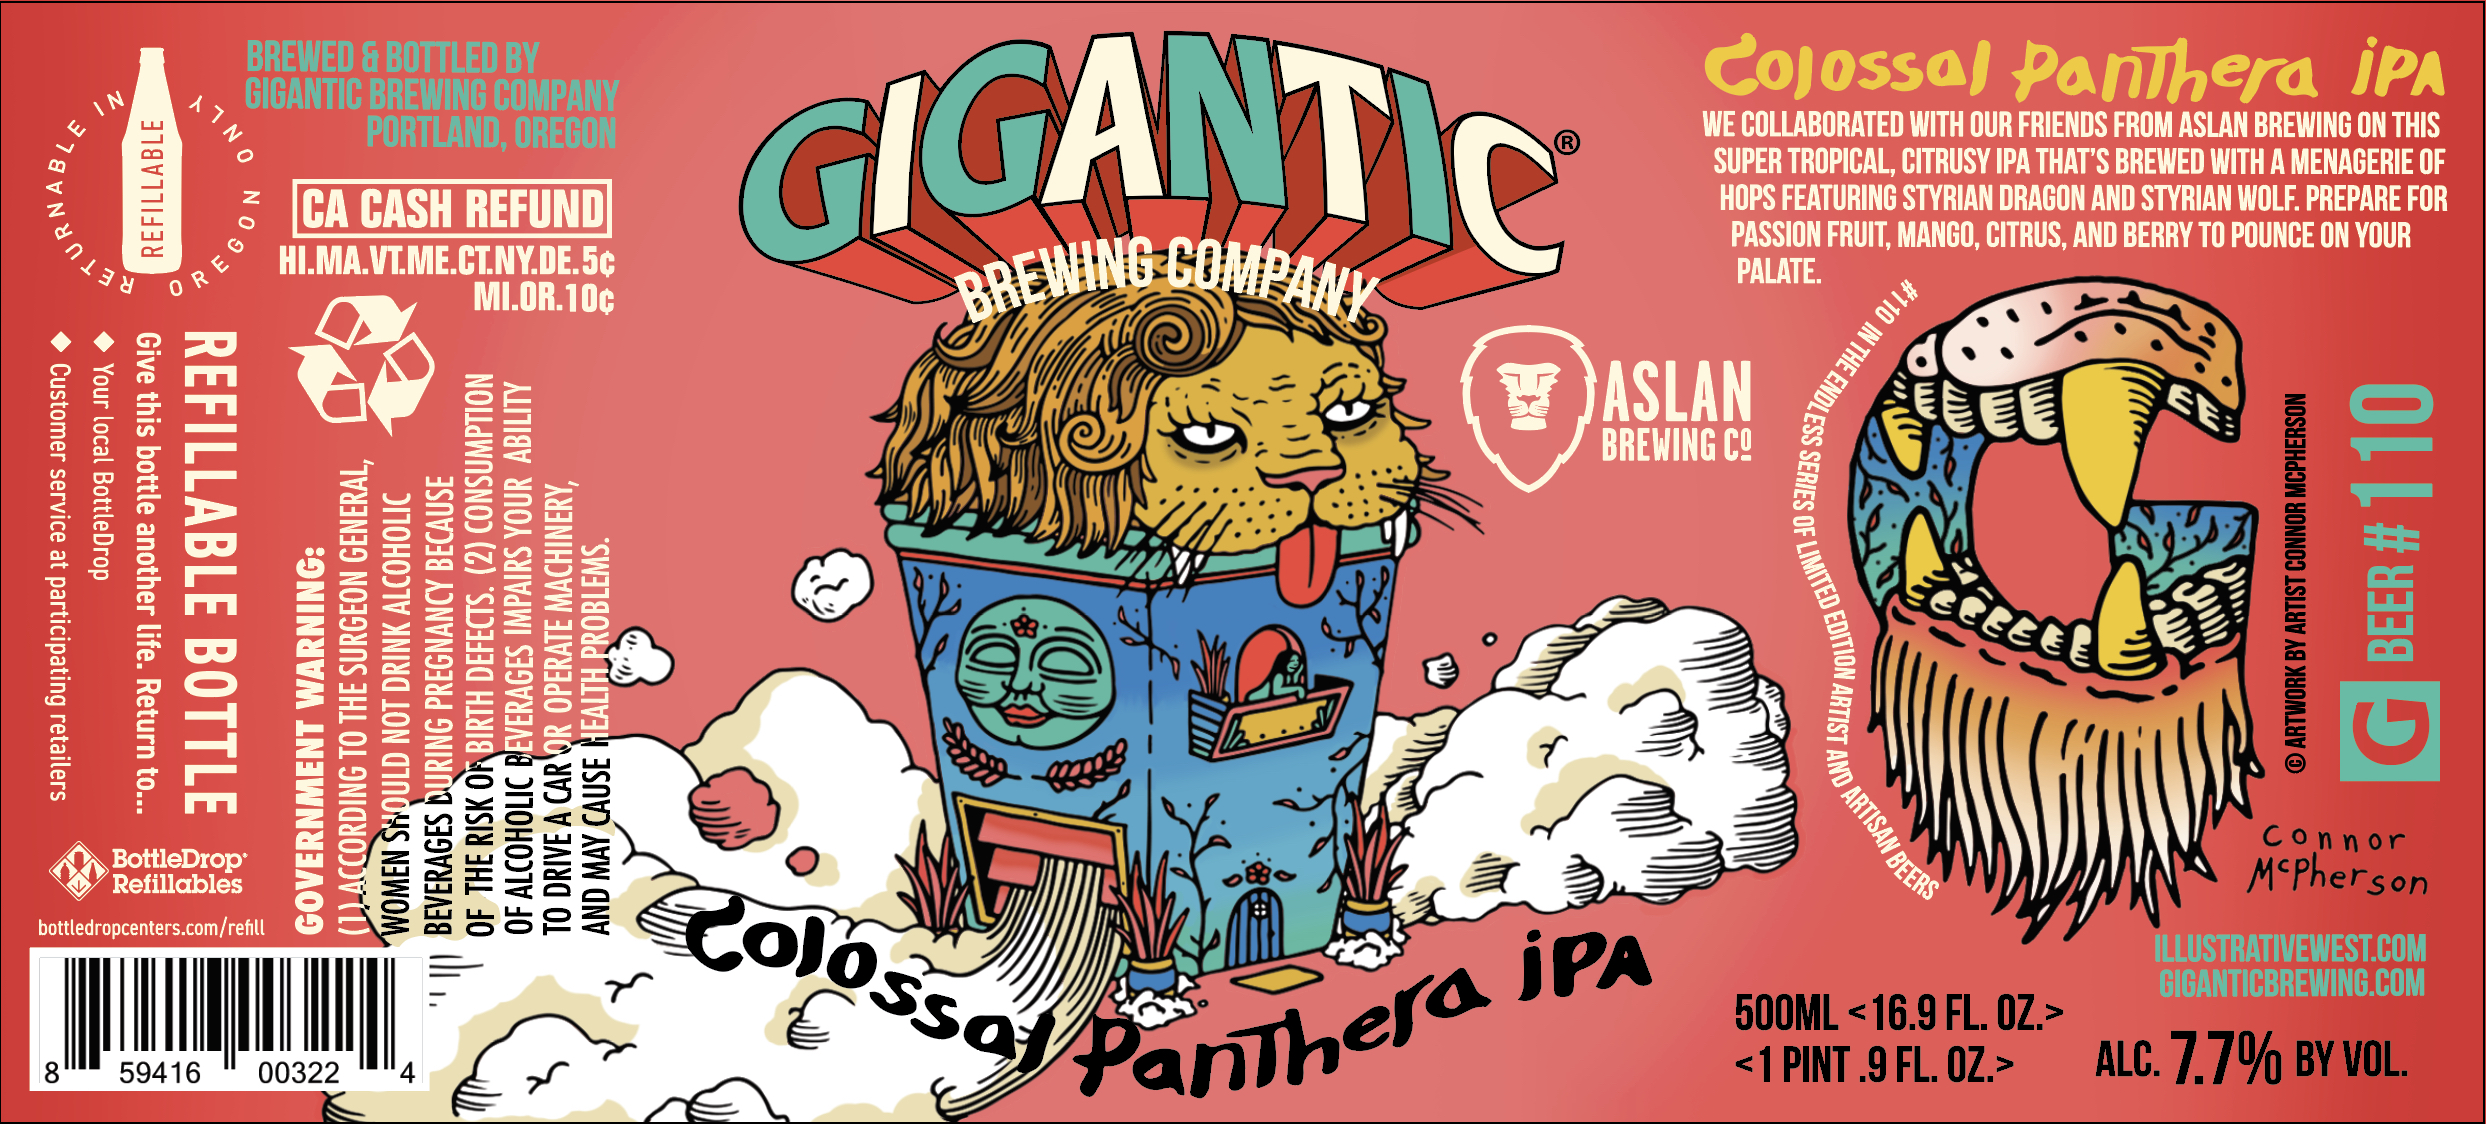 Gigantic Brewing and Aslan Brewing Colossal Panthera IPA Beer Label